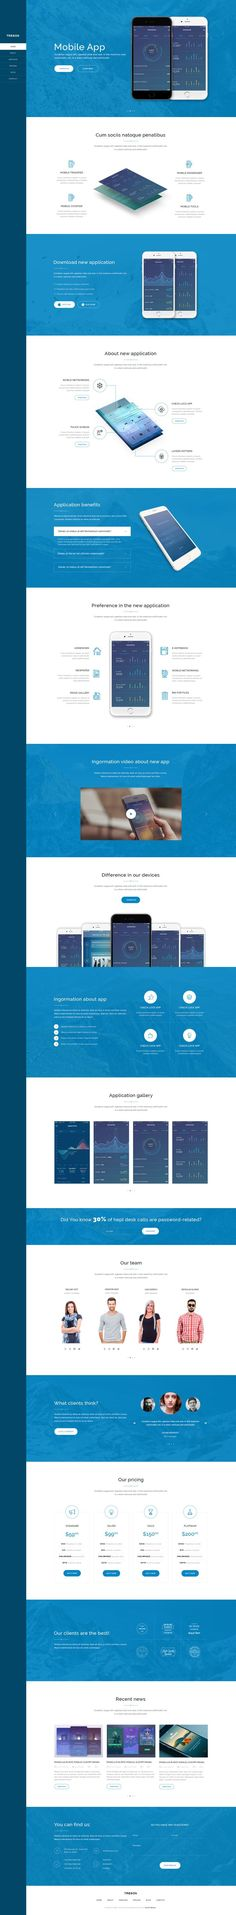 Treson - One Page Agency, App, Startup PSD Template • Download ➝ https://themeforest.net/item/treson-one-page-agency-app-startup-psd-template/15707708?ref=pxcr. If you like UX, design, or design thinking, check out theuxblog.com